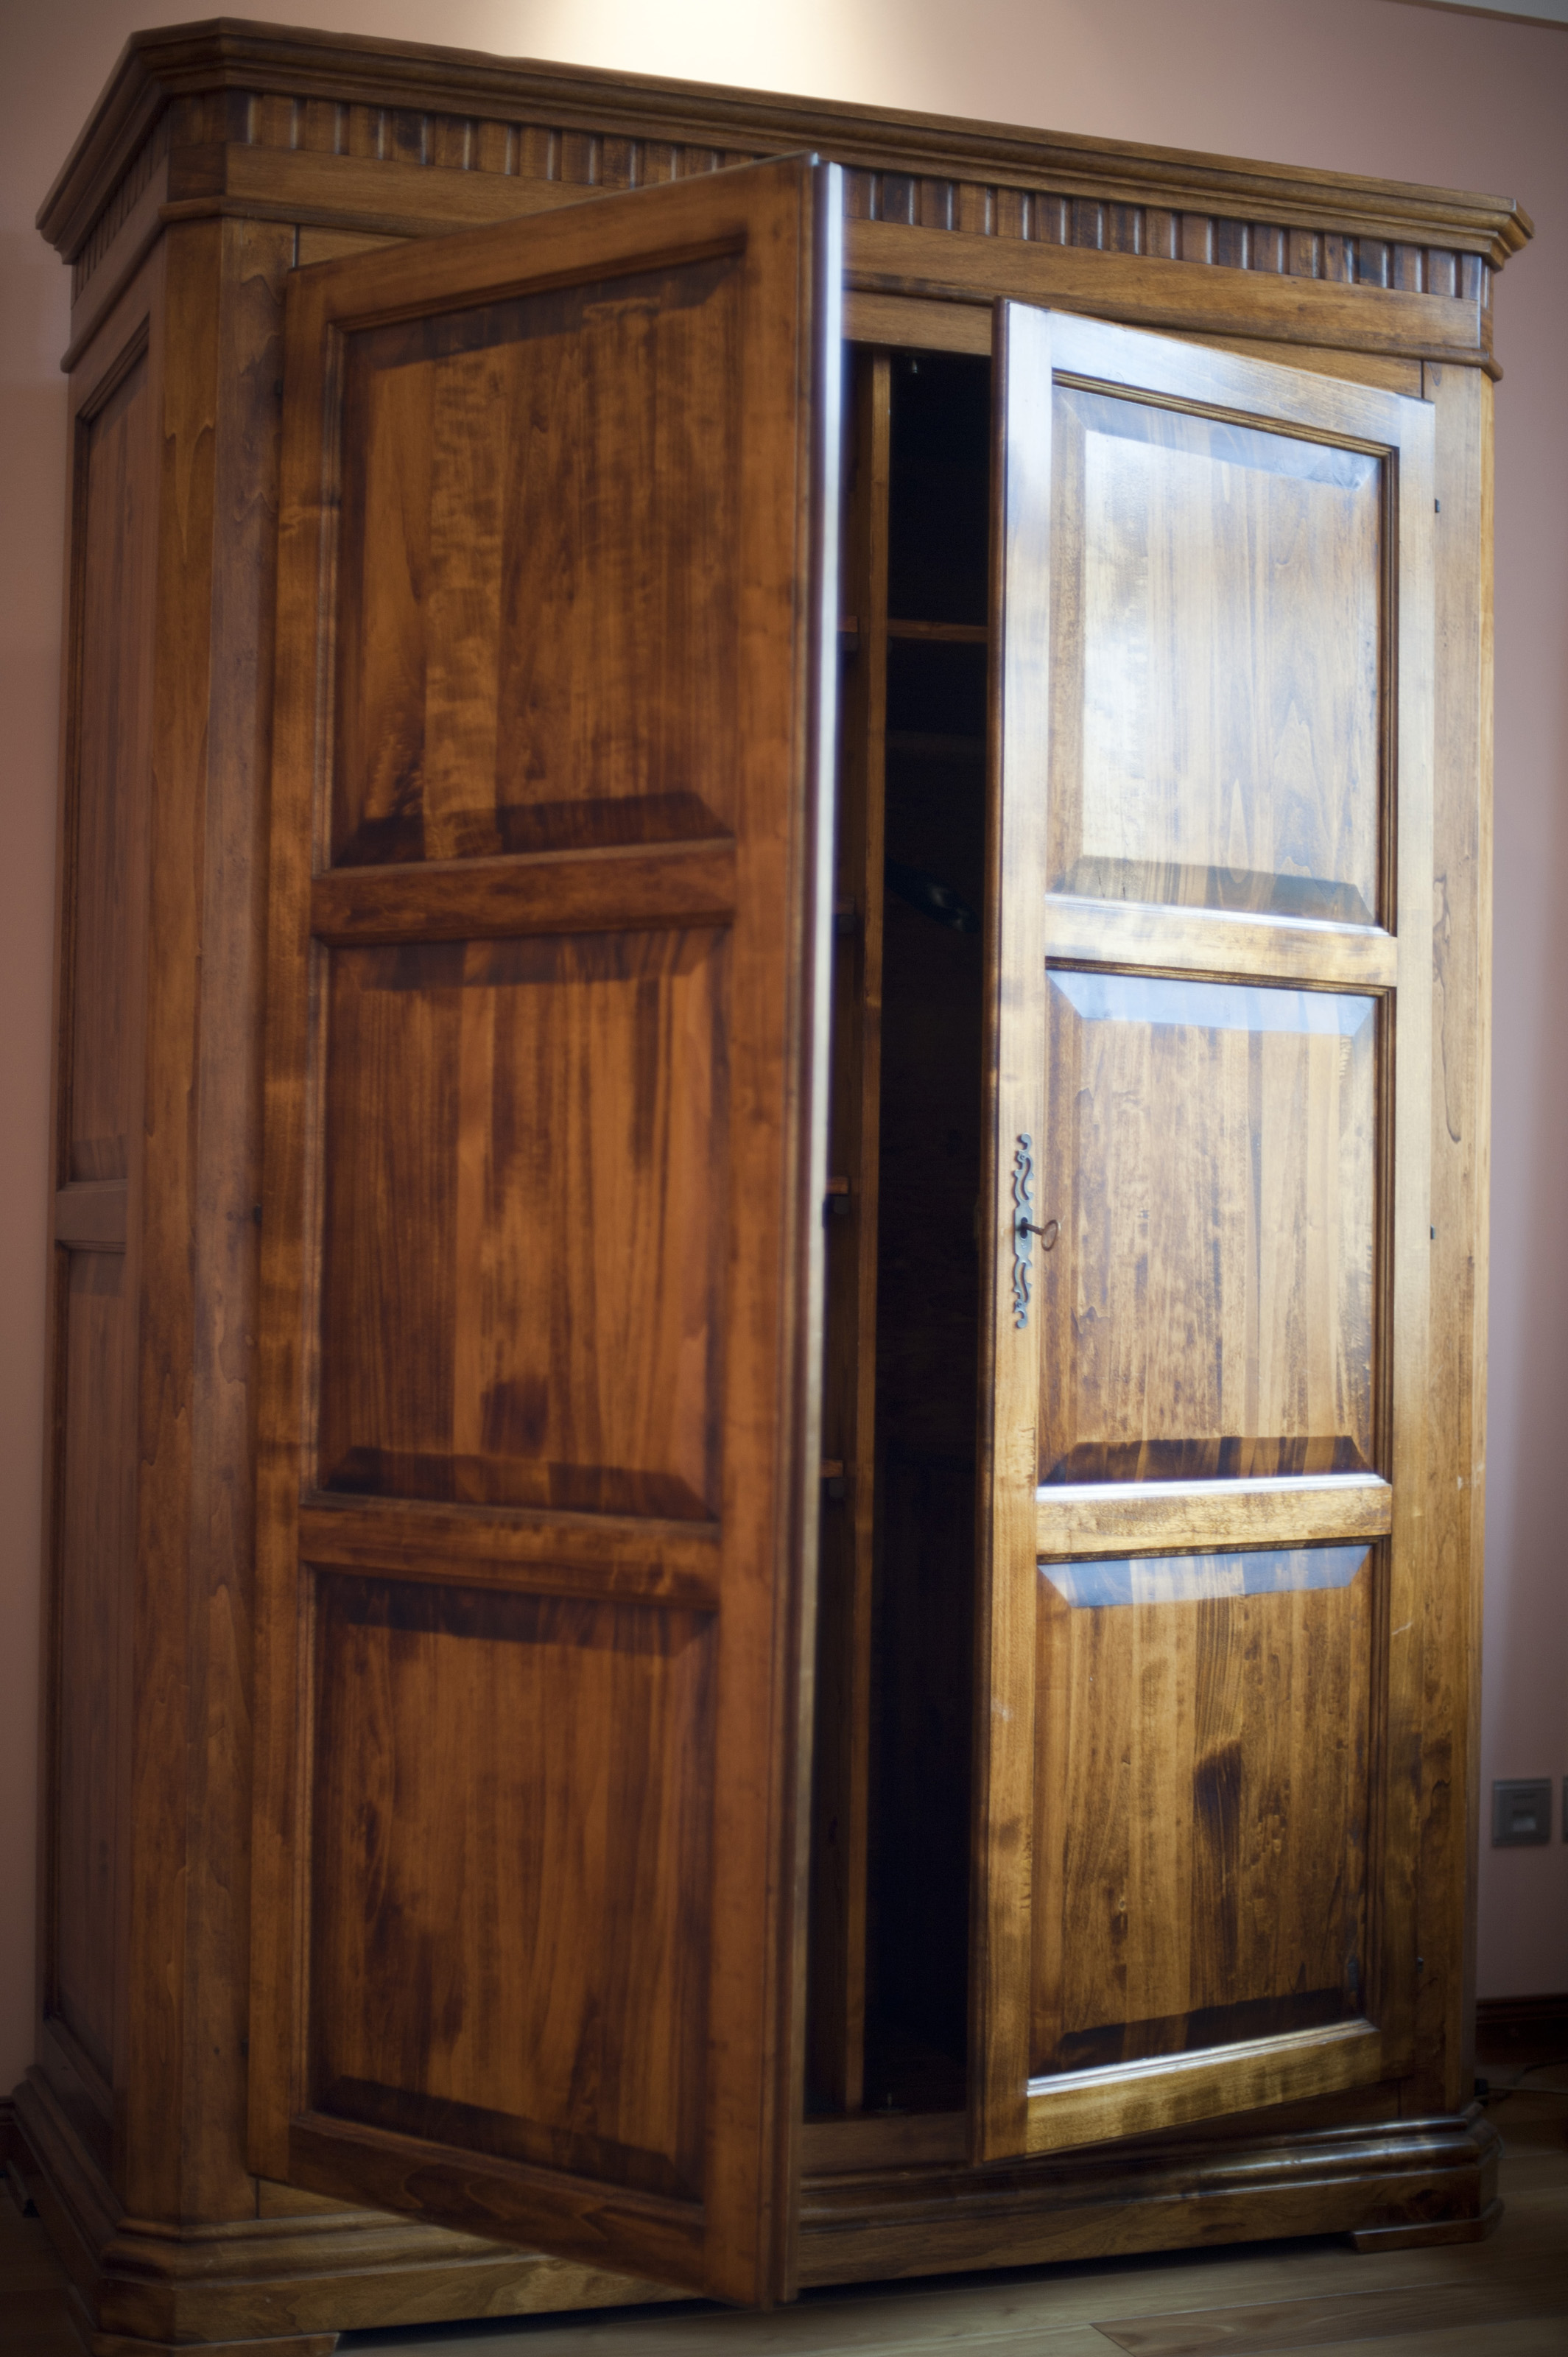 Rustic Large Wooden Wardrobe Or Armoire With The Doors Ajar To Reveal The Empty Shelves For